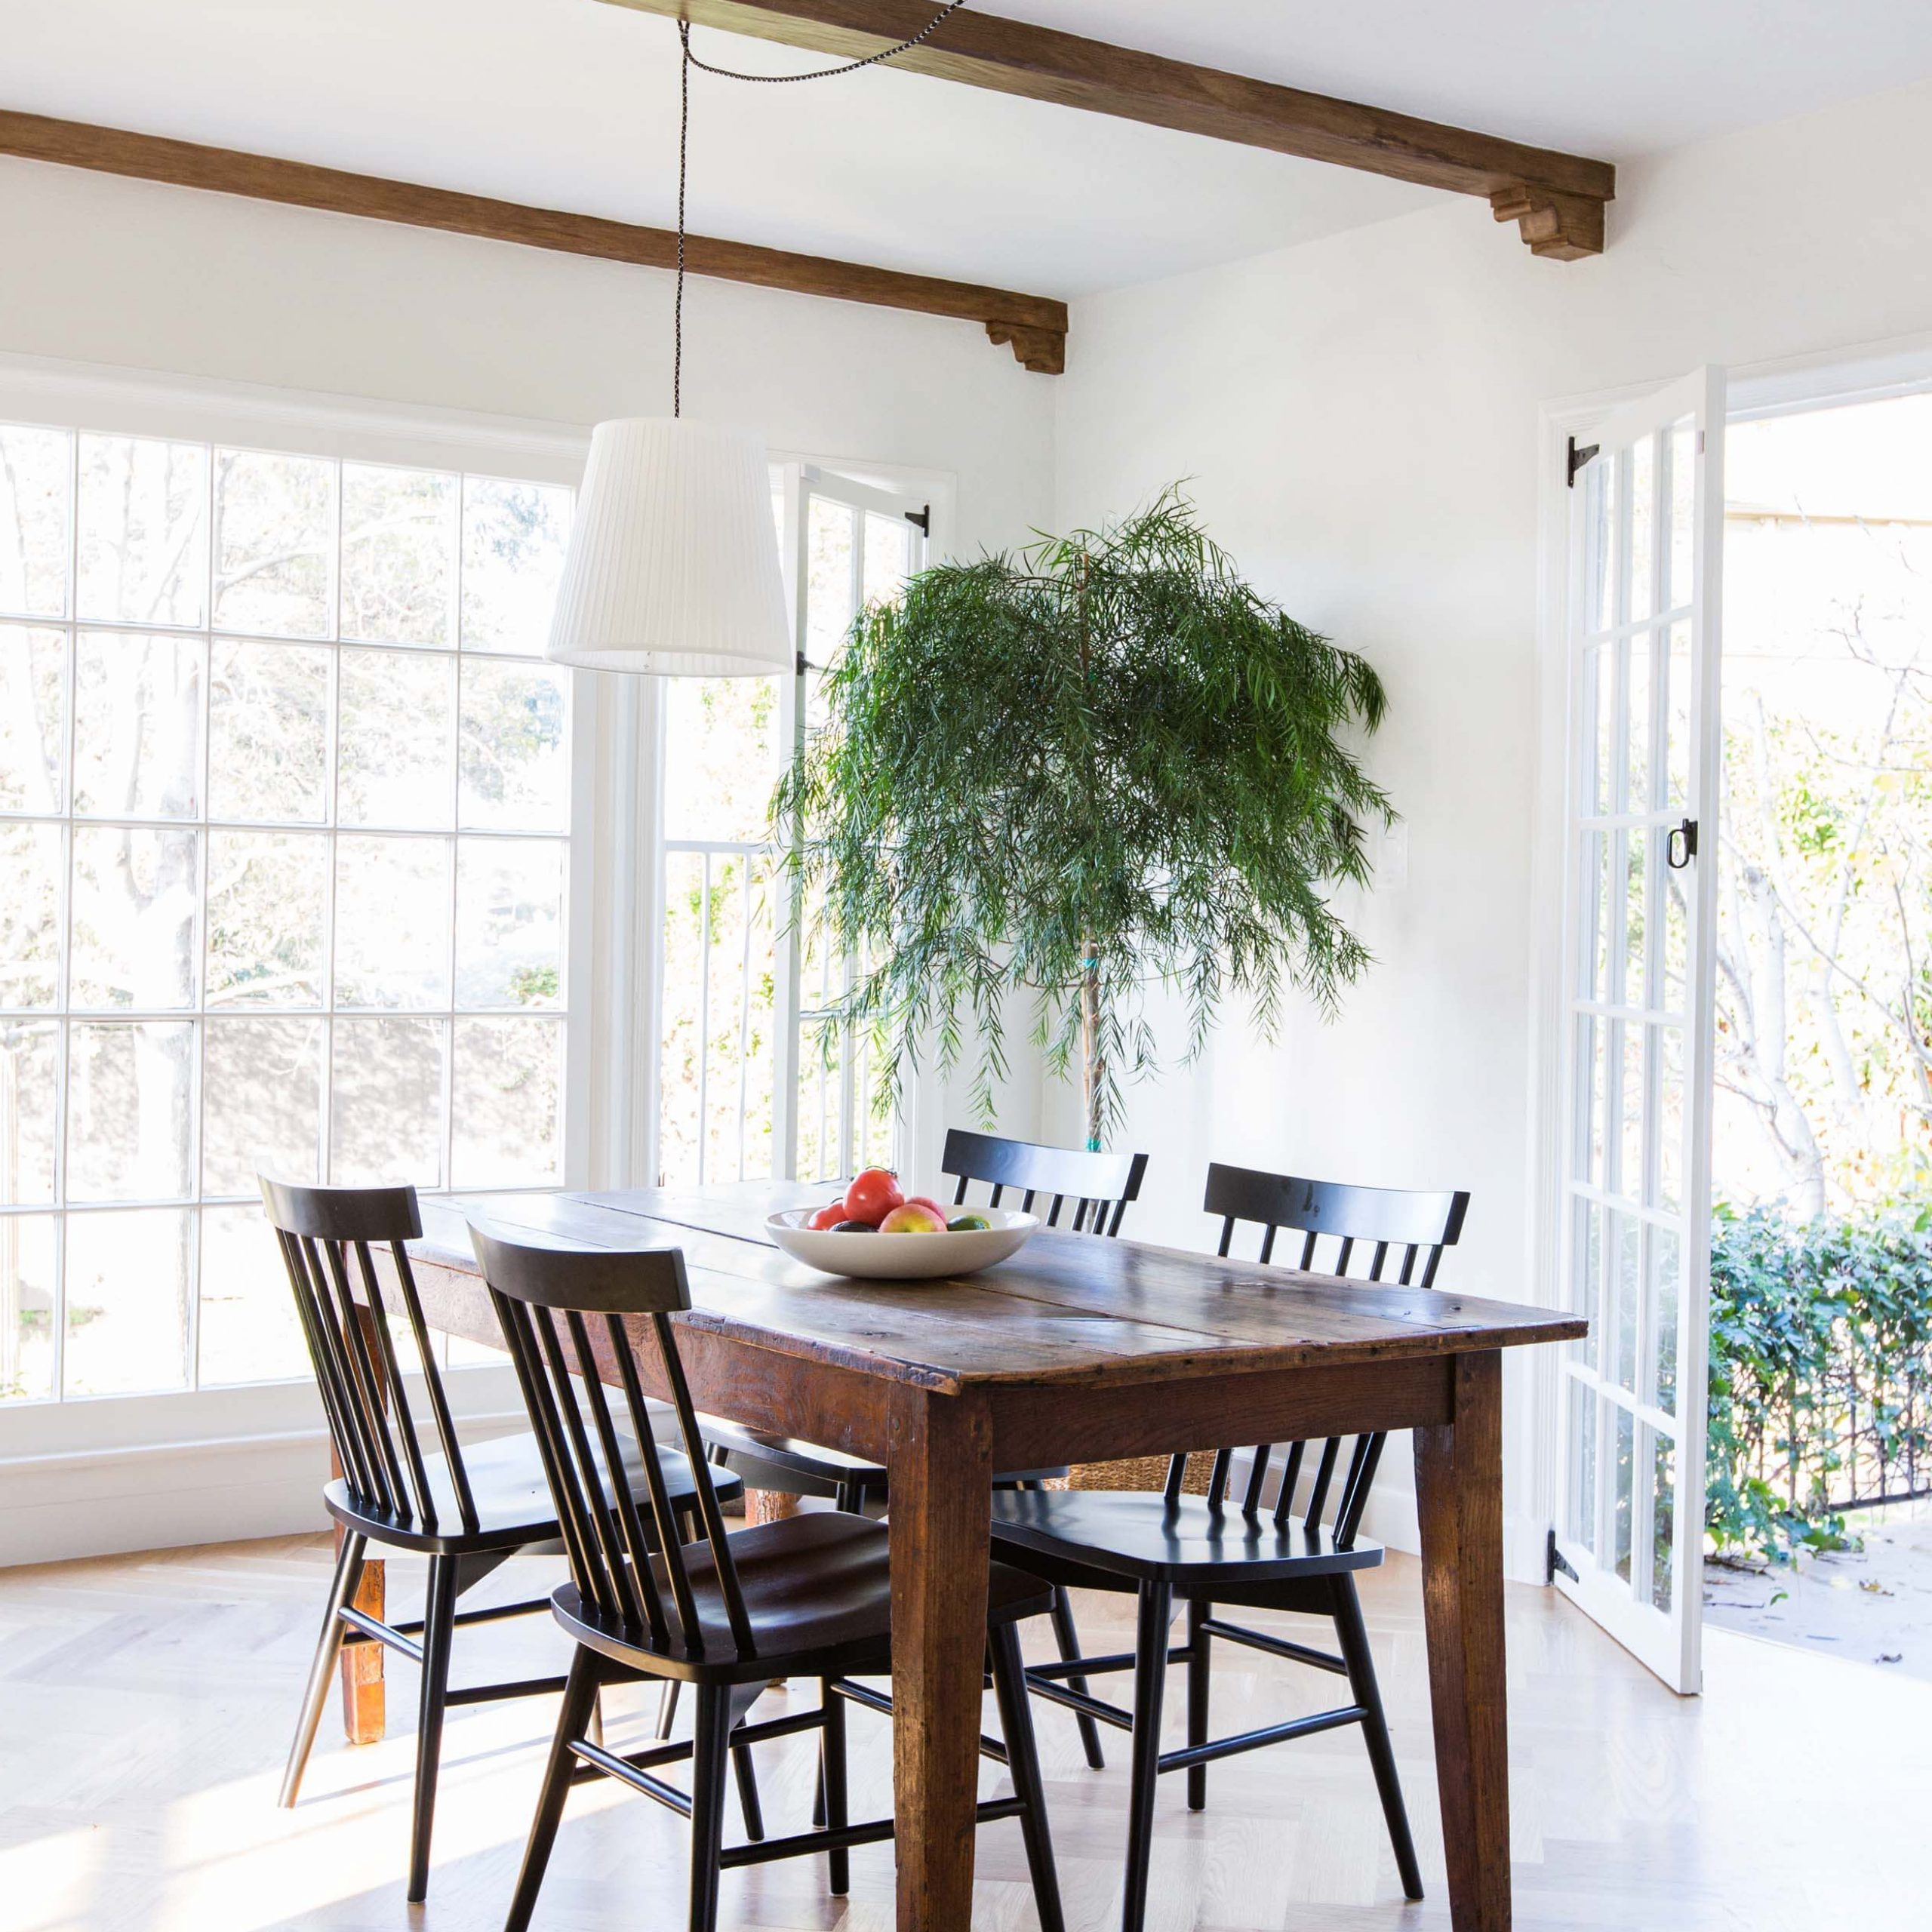 Black Olive Hart Reclaimed Pedestal Extending Dining Tables inside Popular Dining Room Update With A Lot Of Questions - Emily Henderson